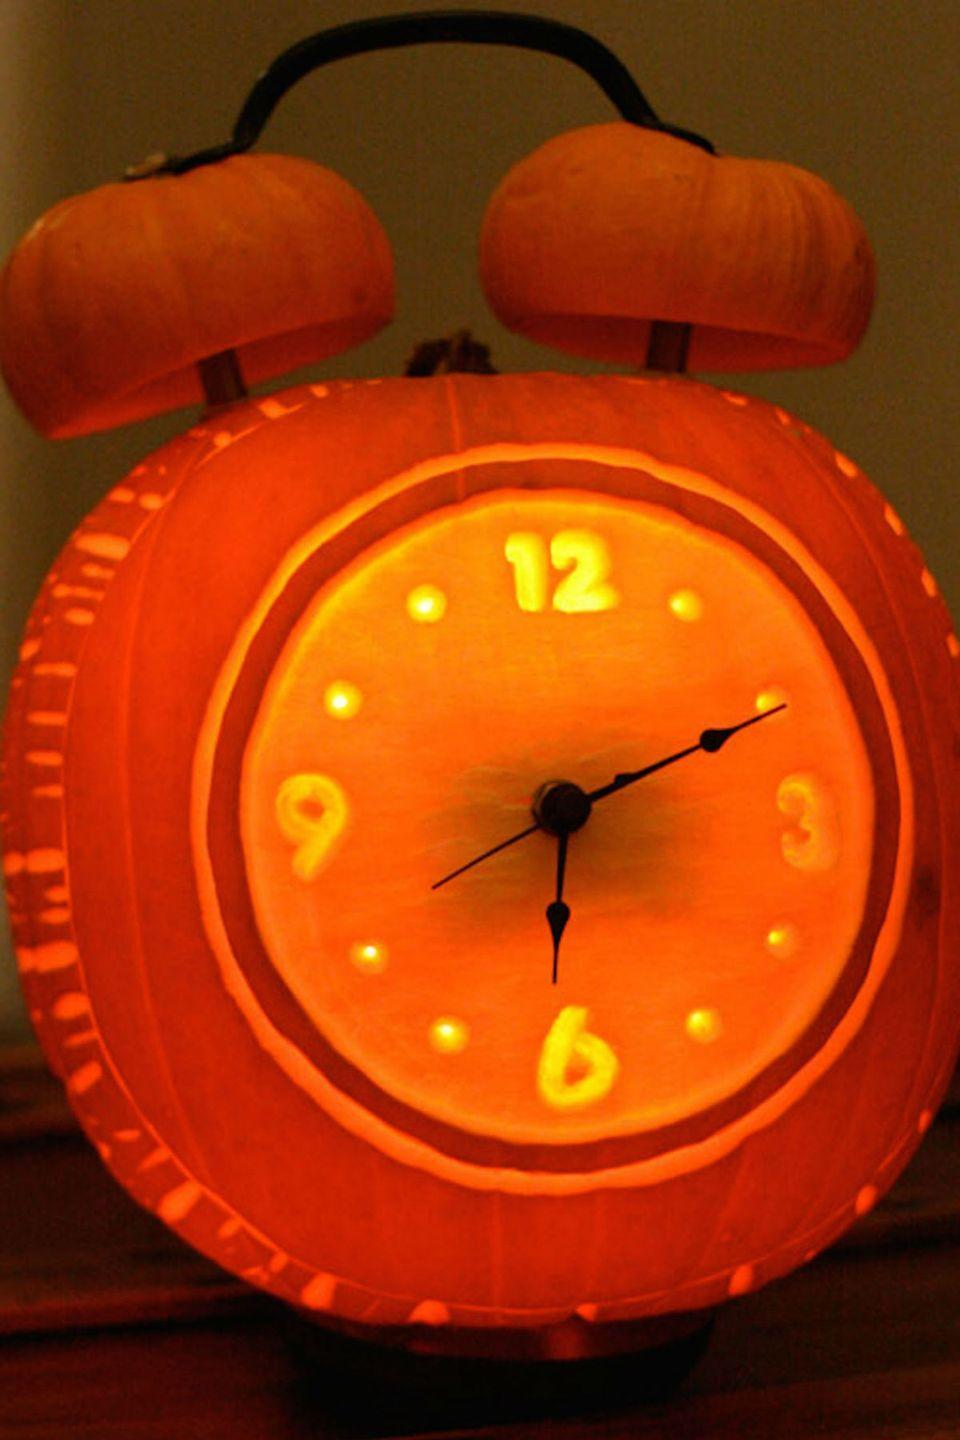 "<p>Count down to midnight with this retro clock carving.</p><p><strong>Get the tutorial at <a href=""http://builtbykids.com/alarm-clock-halloween-pumpkin/"" rel=""nofollow noopener"" target=""_blank"" data-ylk=""slk:Built by Kids"" class=""link rapid-noclick-resp"">Built by Kids</a>. </strong></p>"